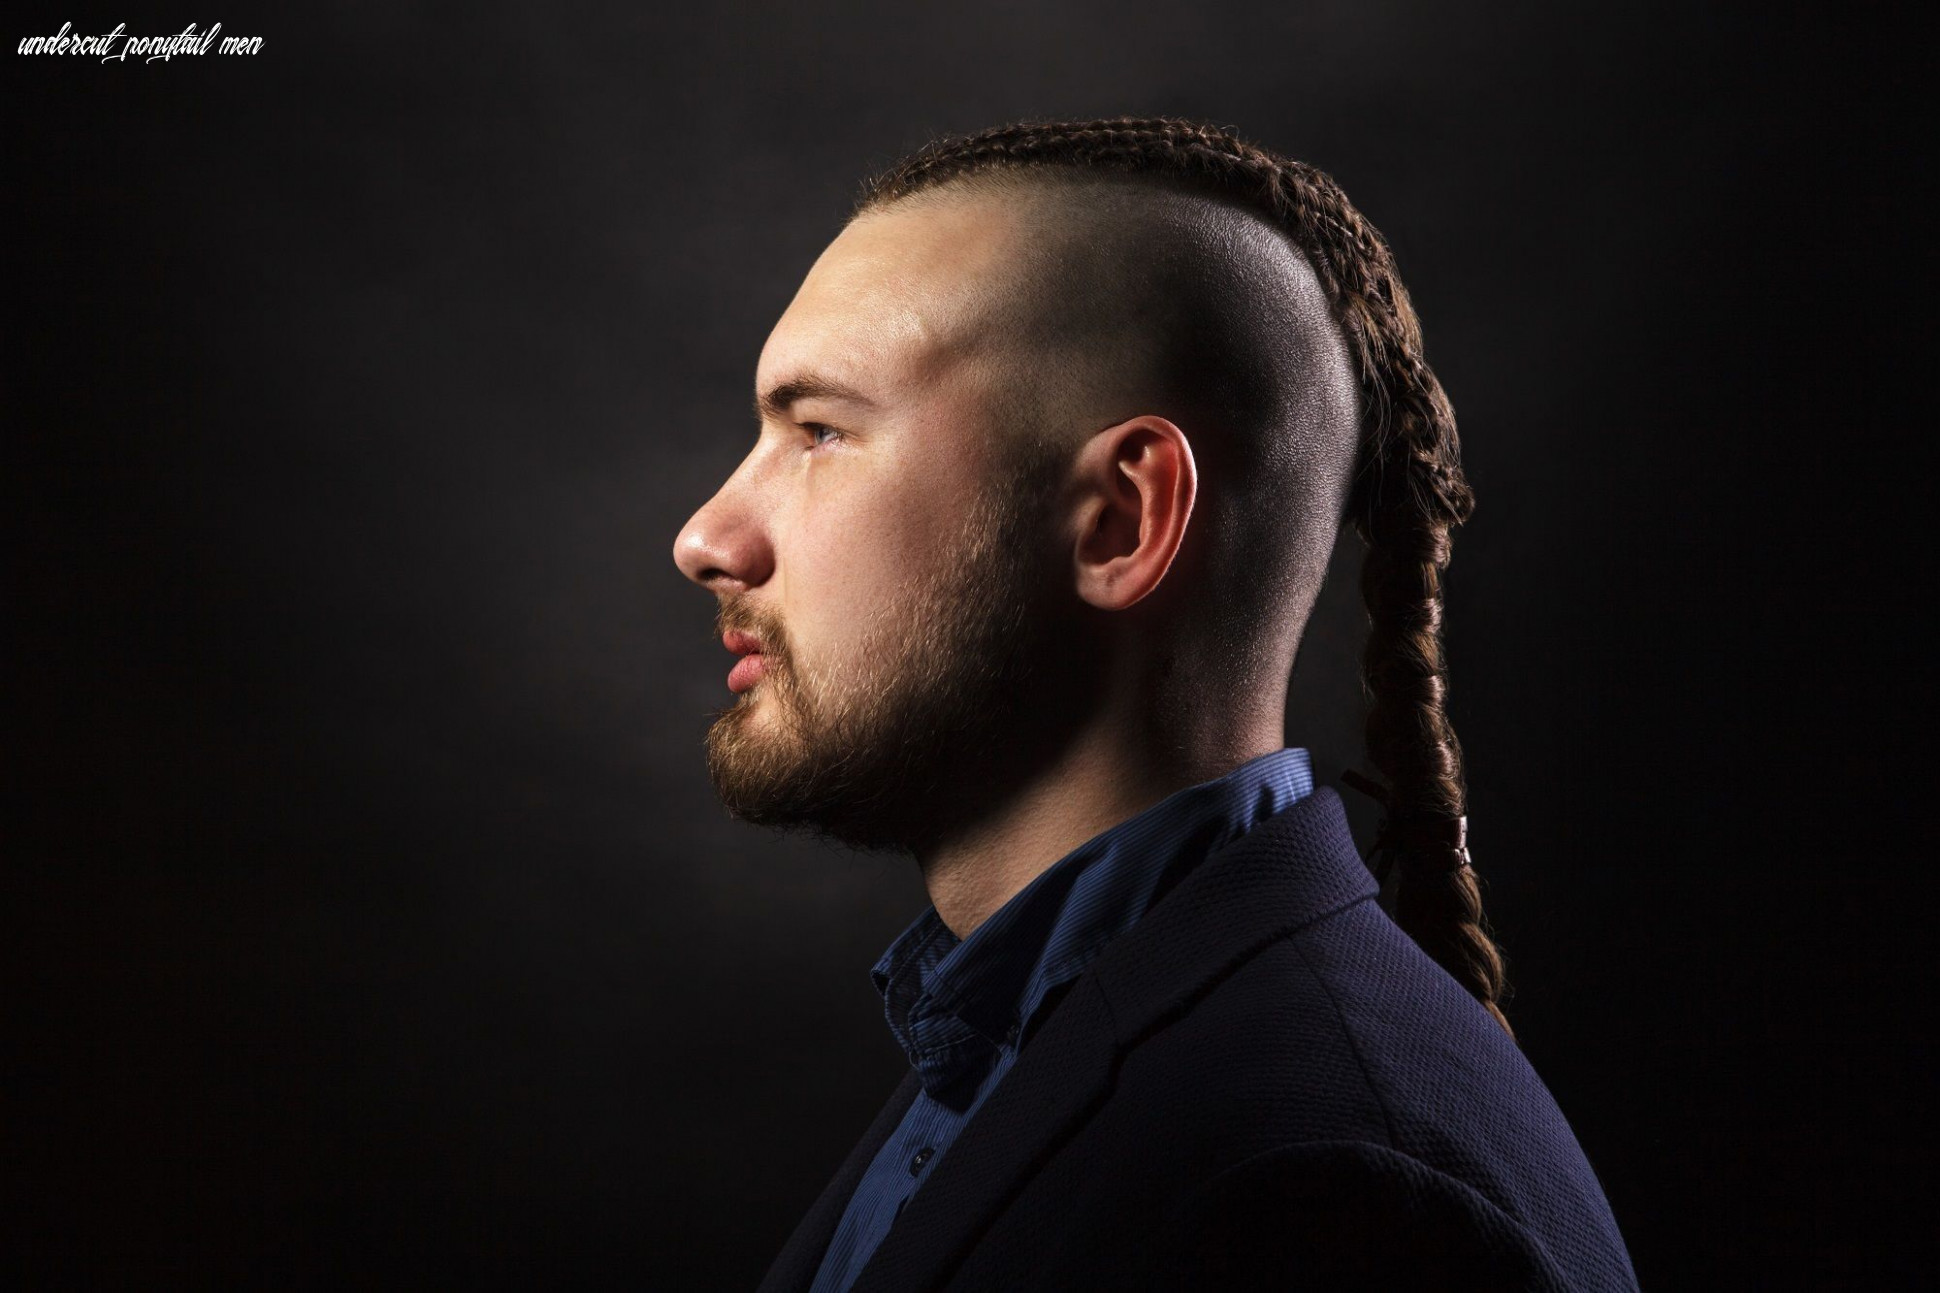 Man ponytail hairstyles in 12 that you can create at home undercut ponytail men